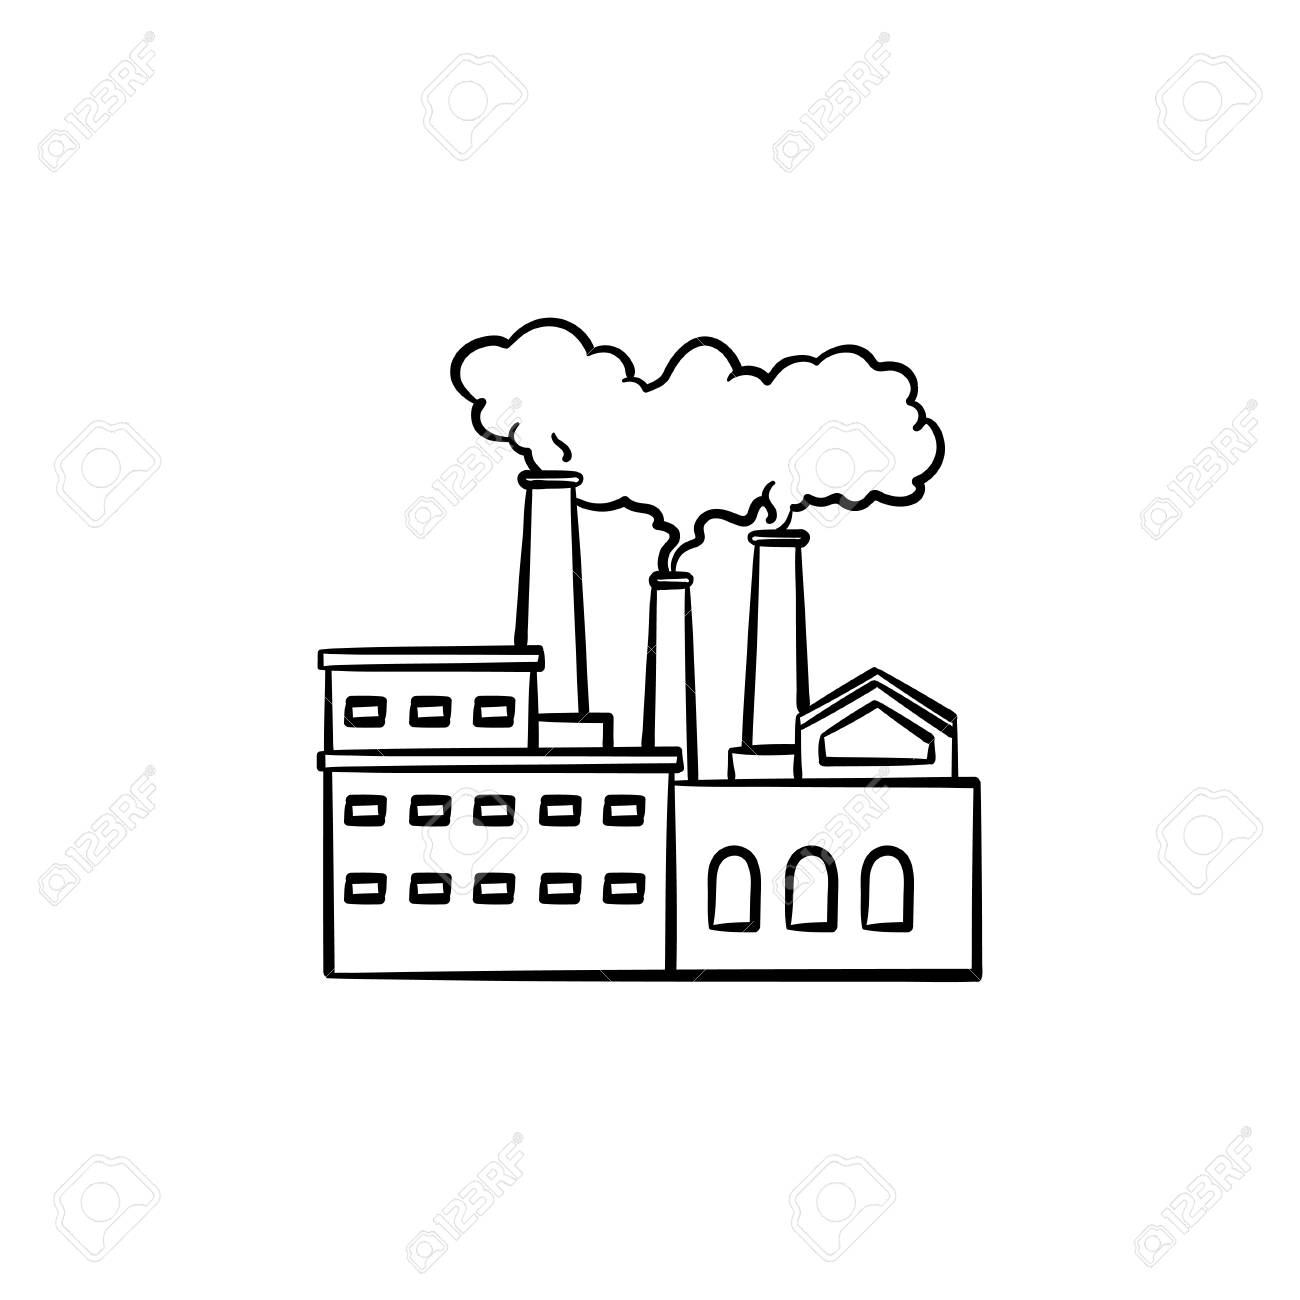 Outline Sketch Of Air Pollution Black And White